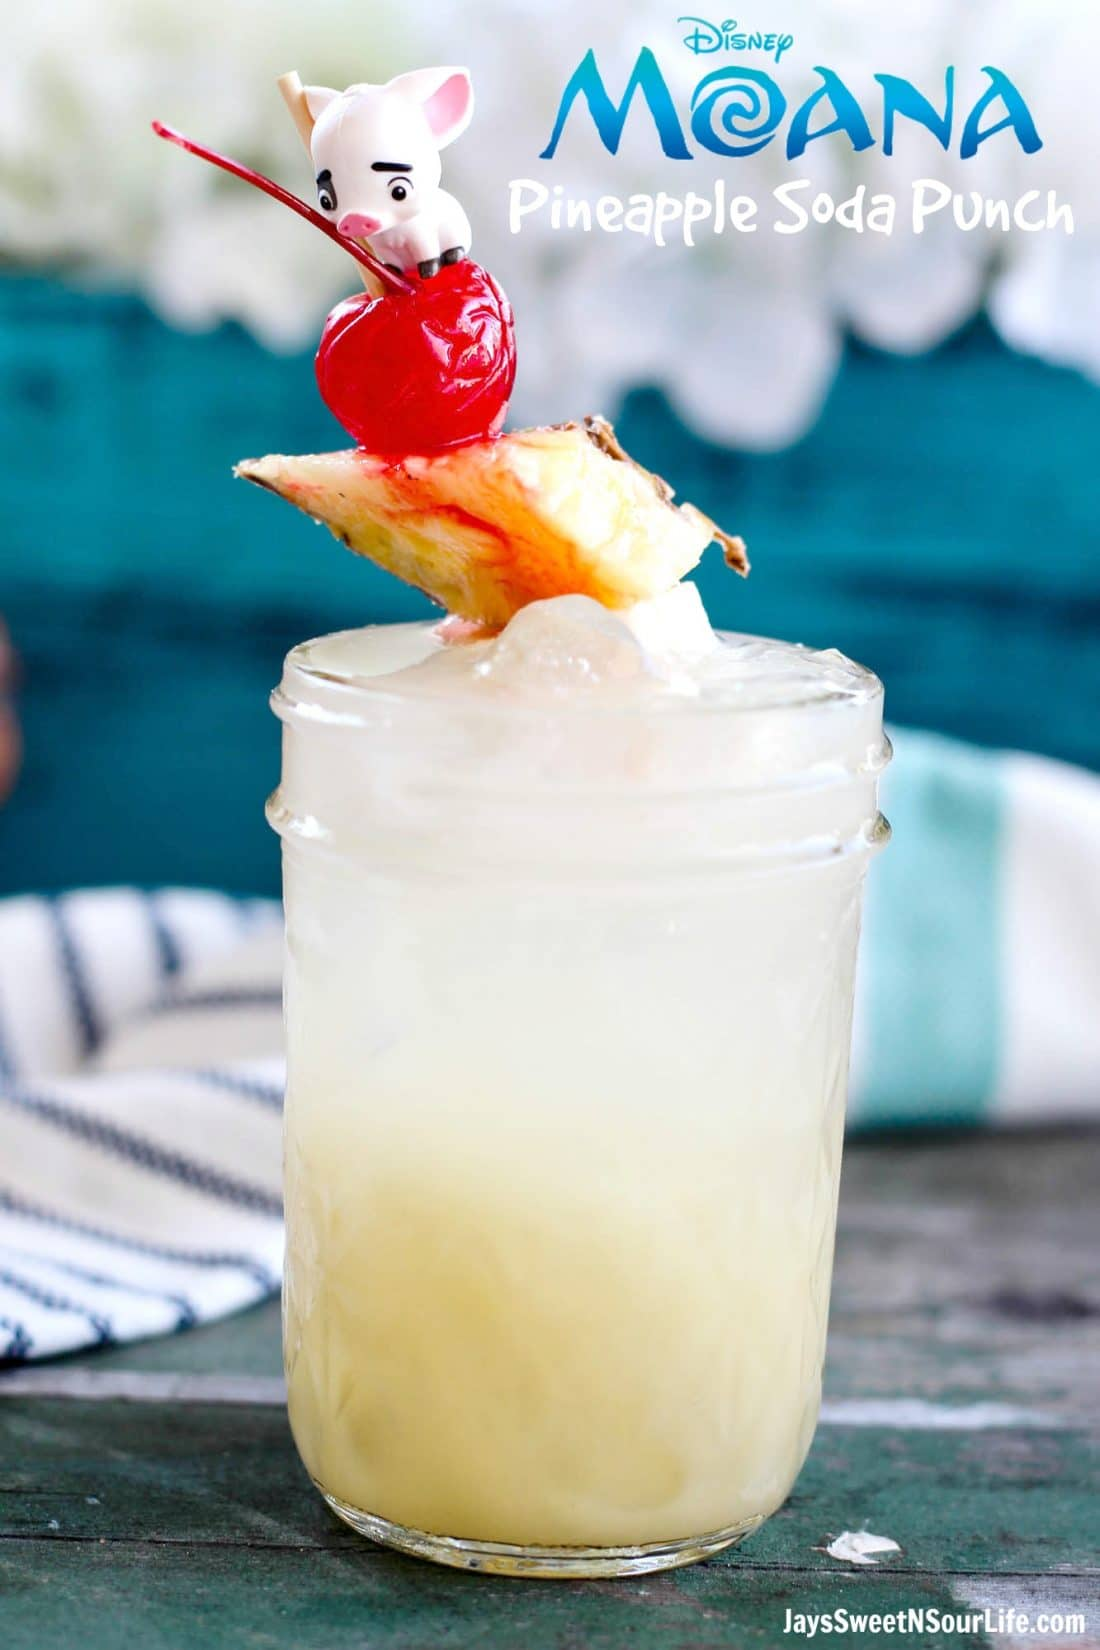 moana-pineapple-soda-punch-pinterest-share